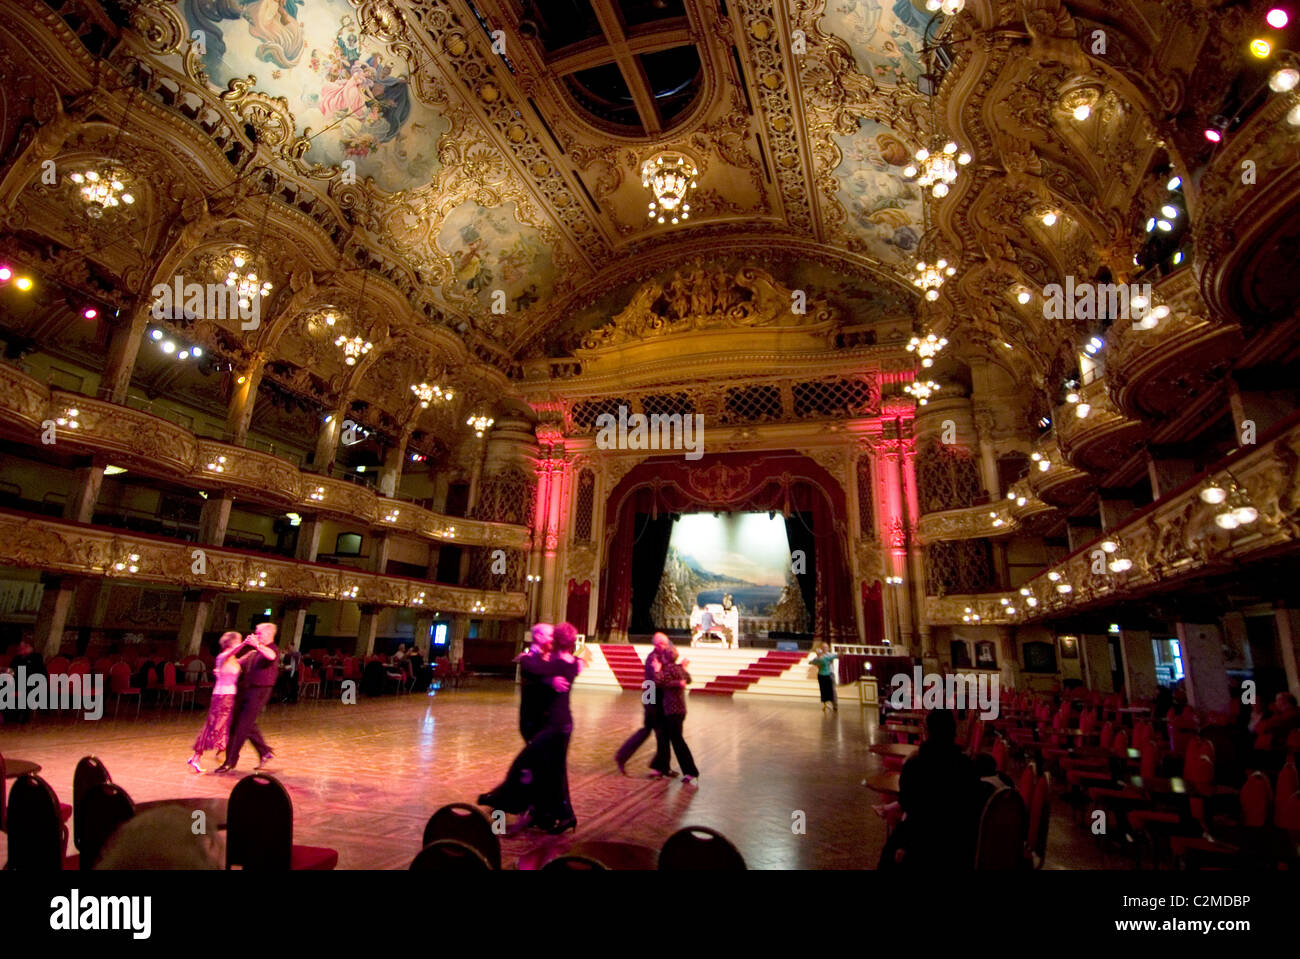 Roller skating venues - Stock Photo The Tower Ballroom Opened As A Roller Skating Rink But Changed To A Dance Venue In The 1920s Blackpool England